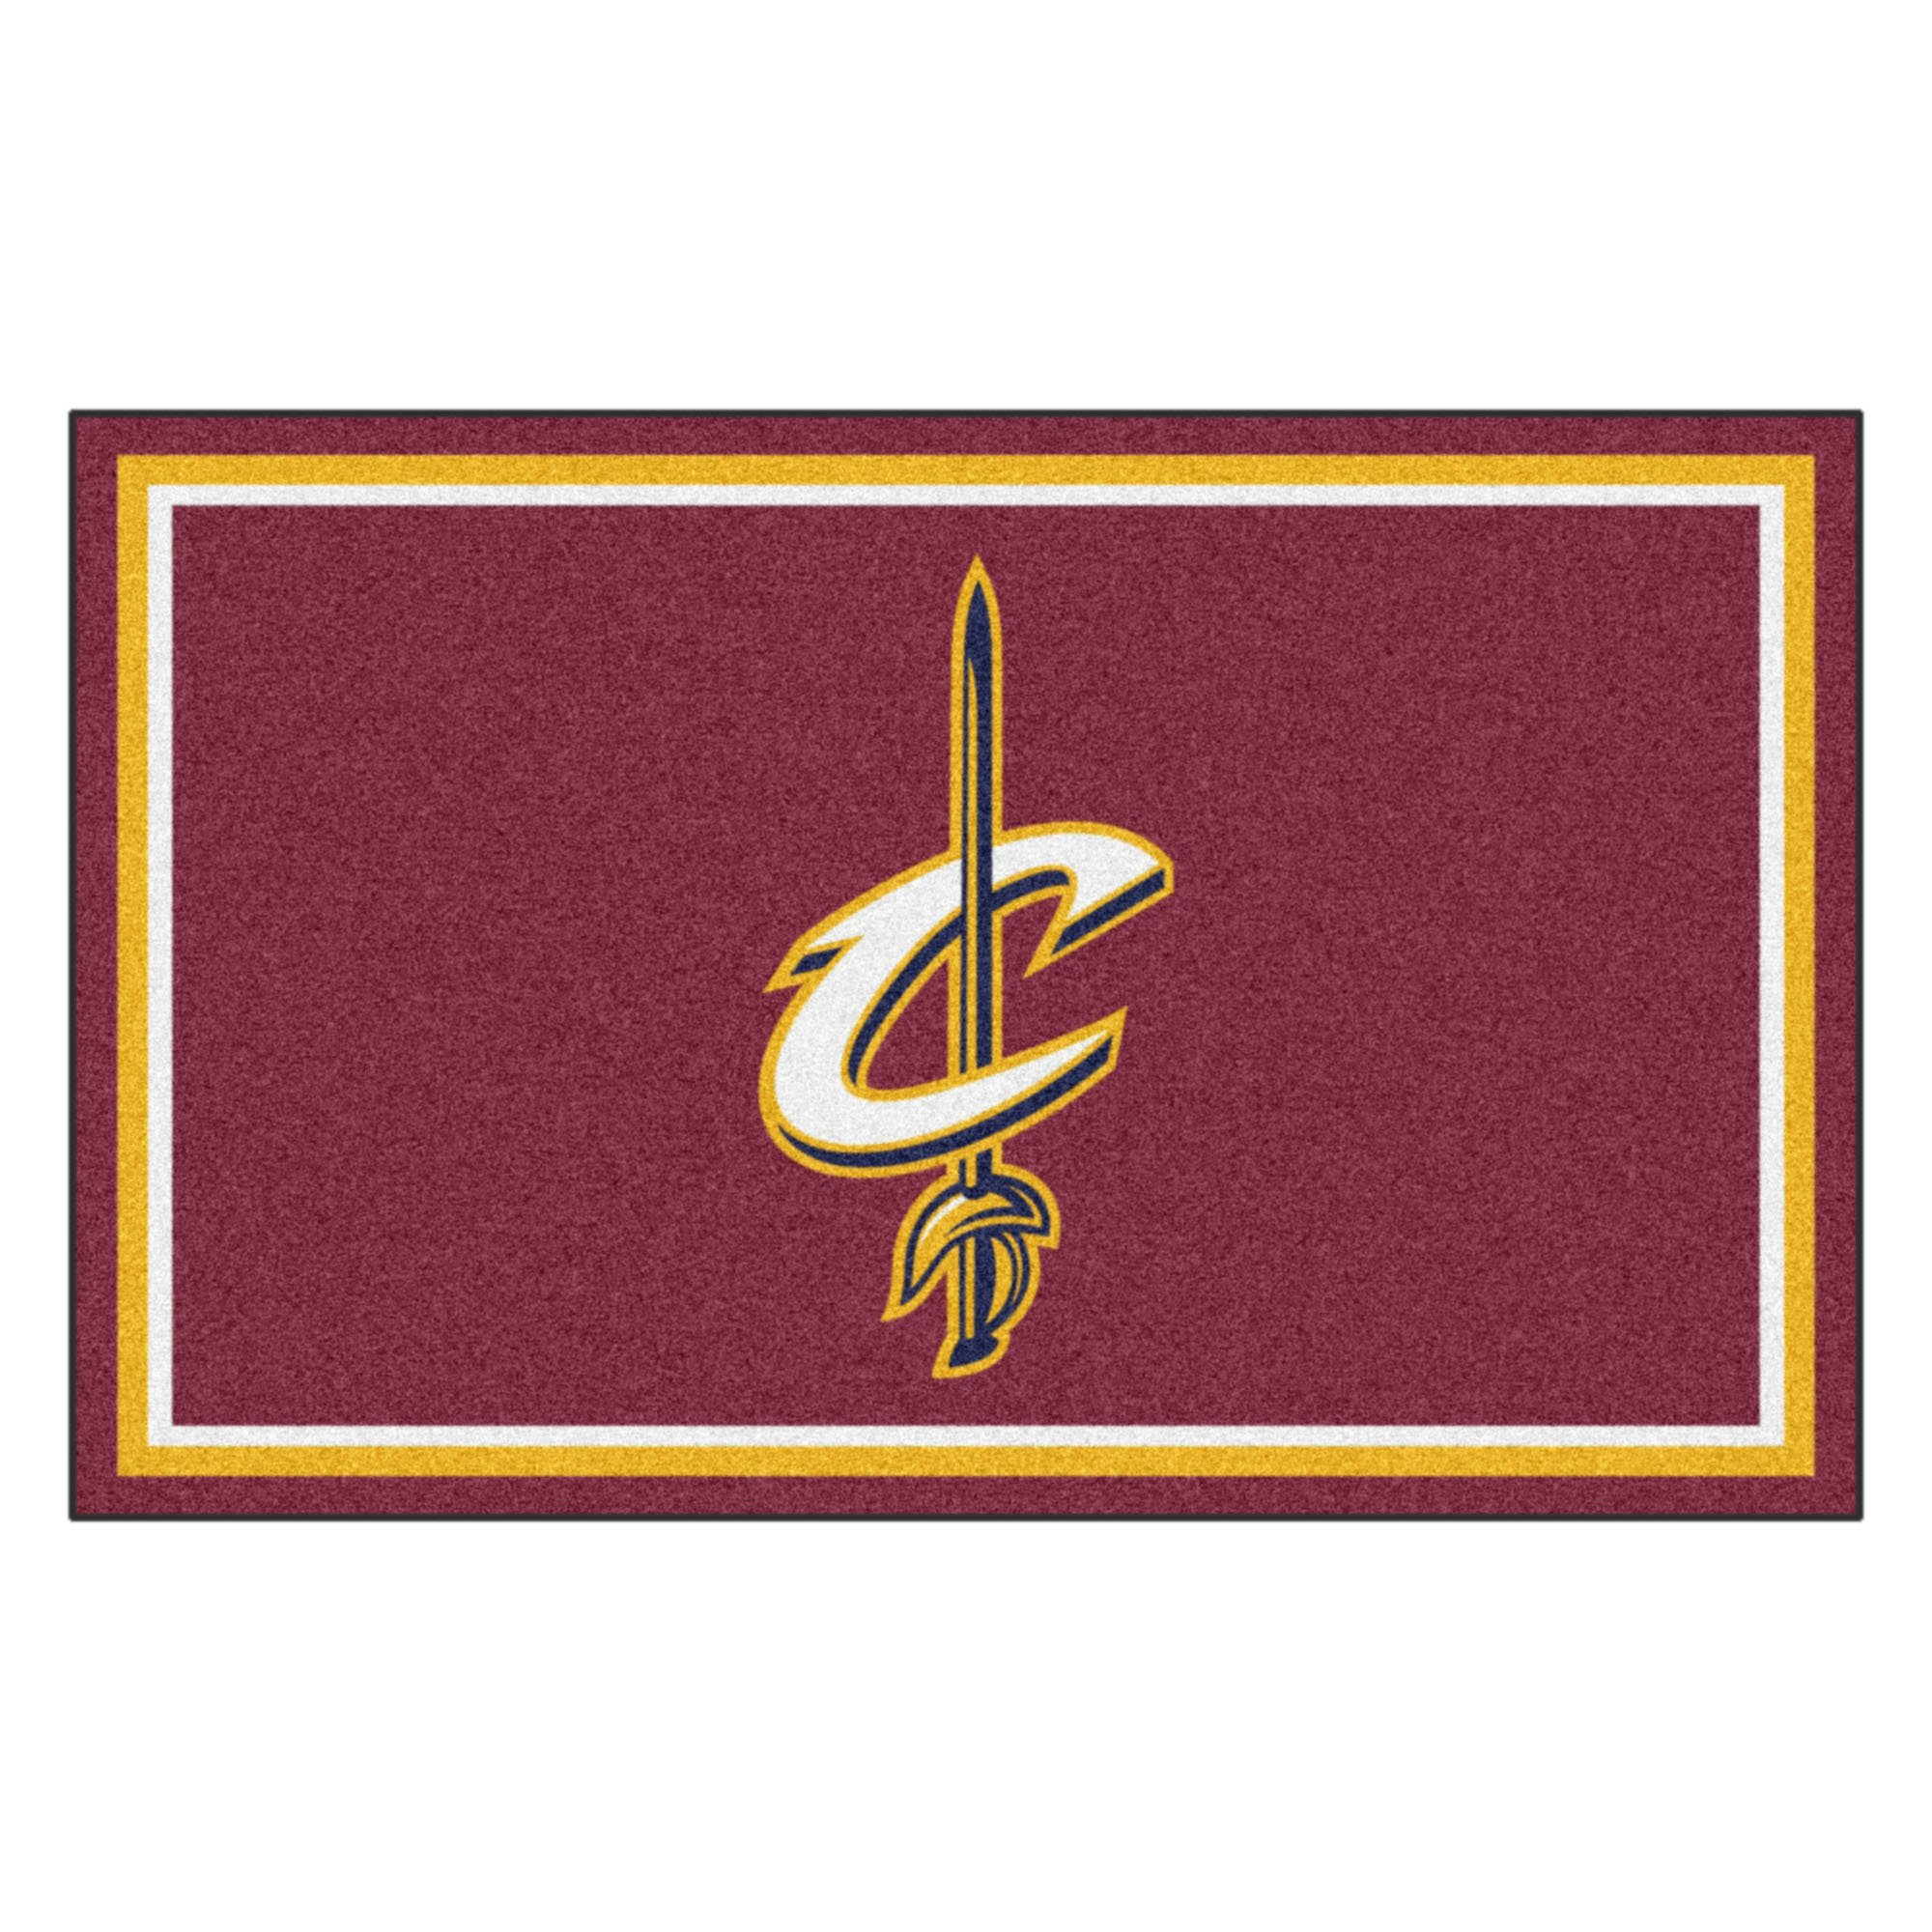 FANMATS 20423 NBA - Cleveland Cavaliers 4'X6' Rug, Team Color, 44''x71'' by Fanmats